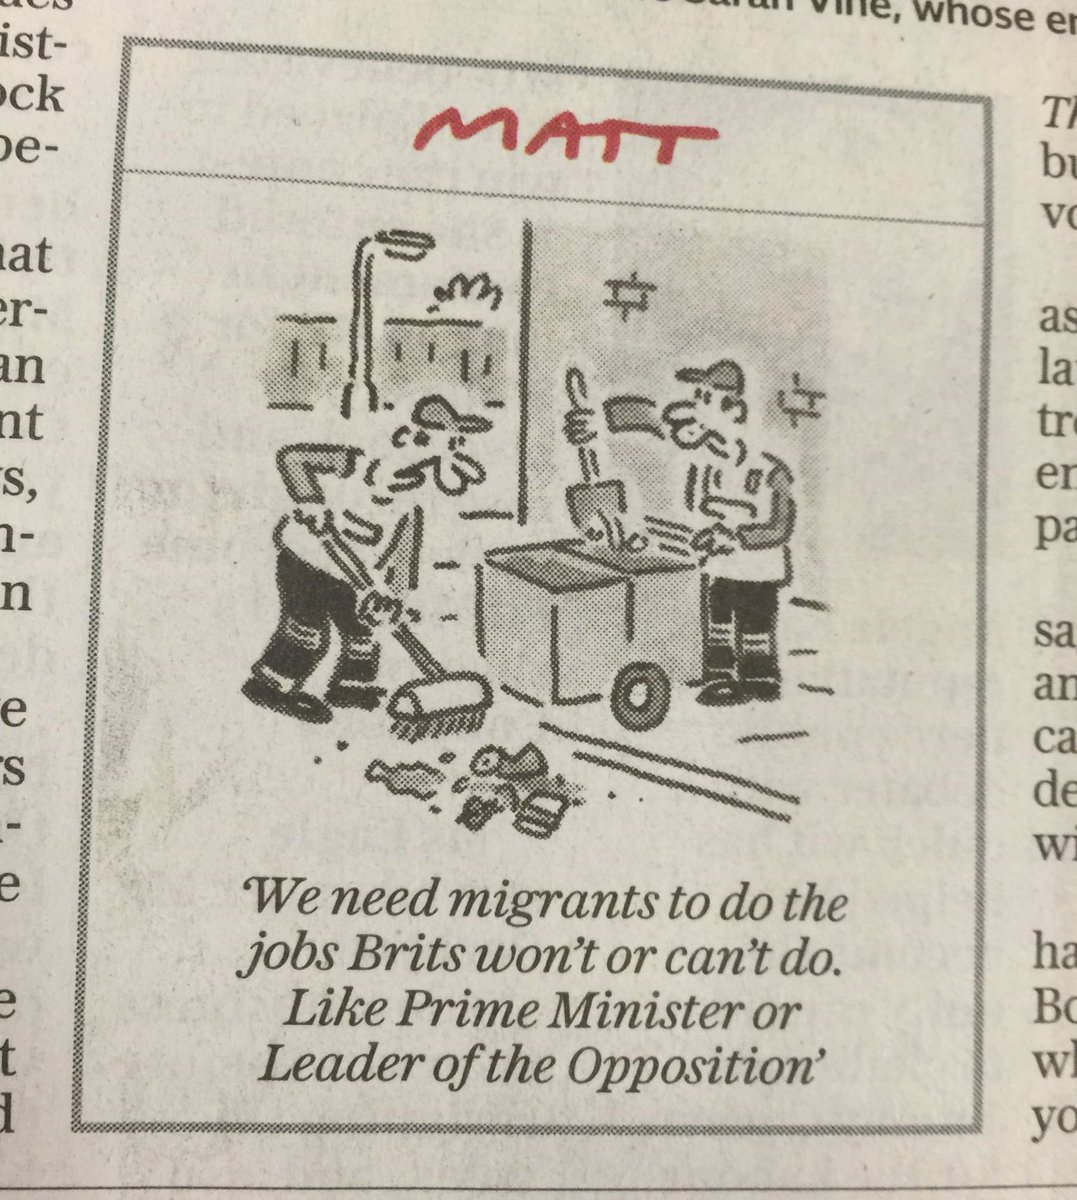 In these troubled times one thing unites us - Matt is a genius https://t.co/P8ozVNBRQV